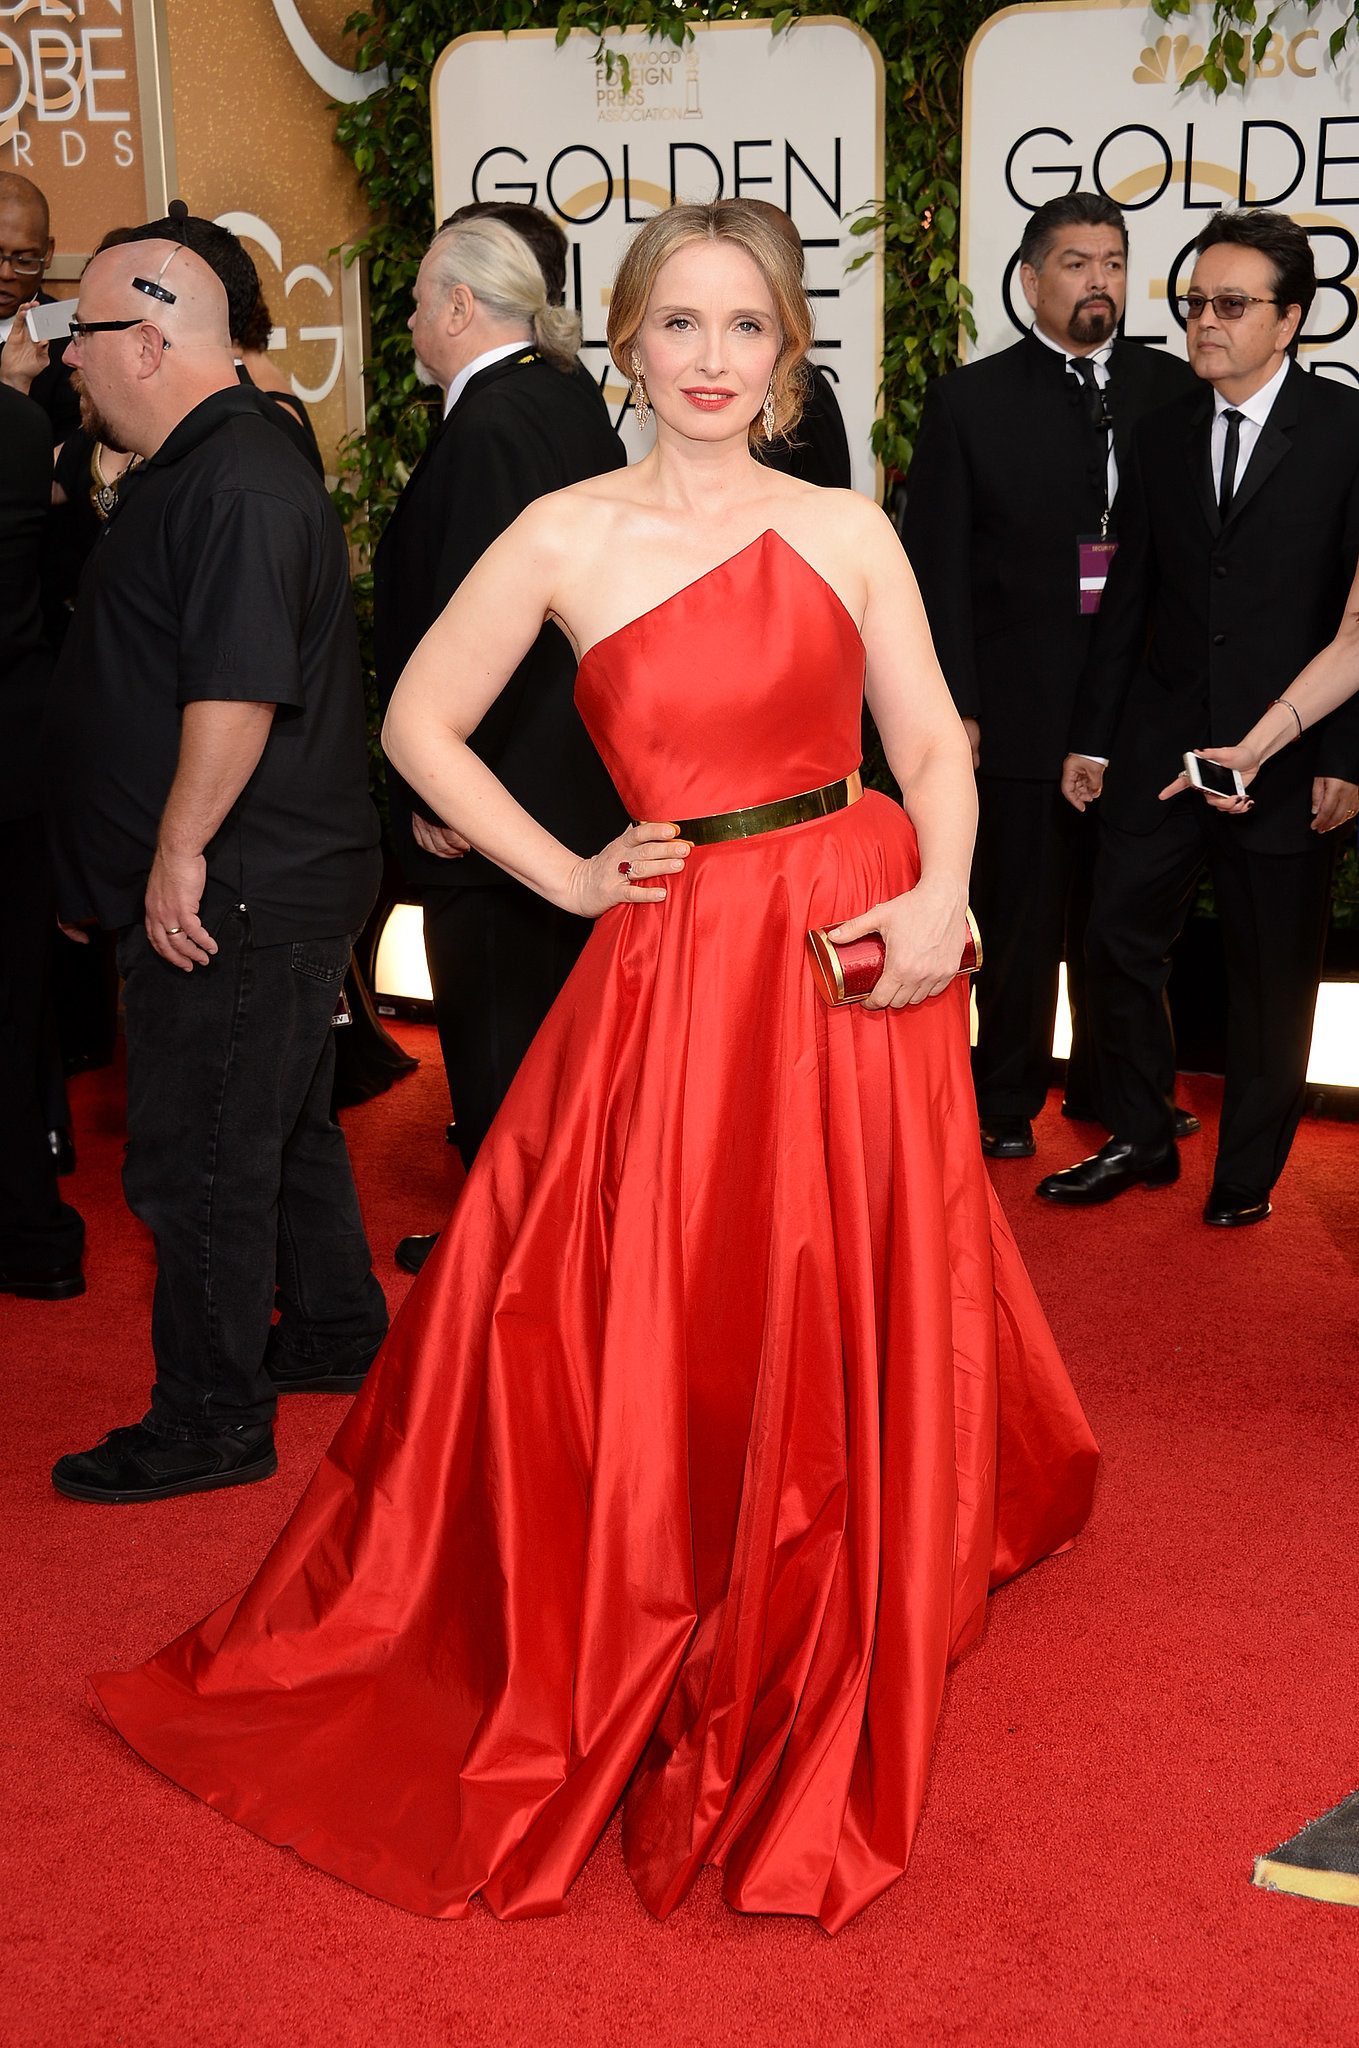 Julie Delpy arrived at the Golden Globes.